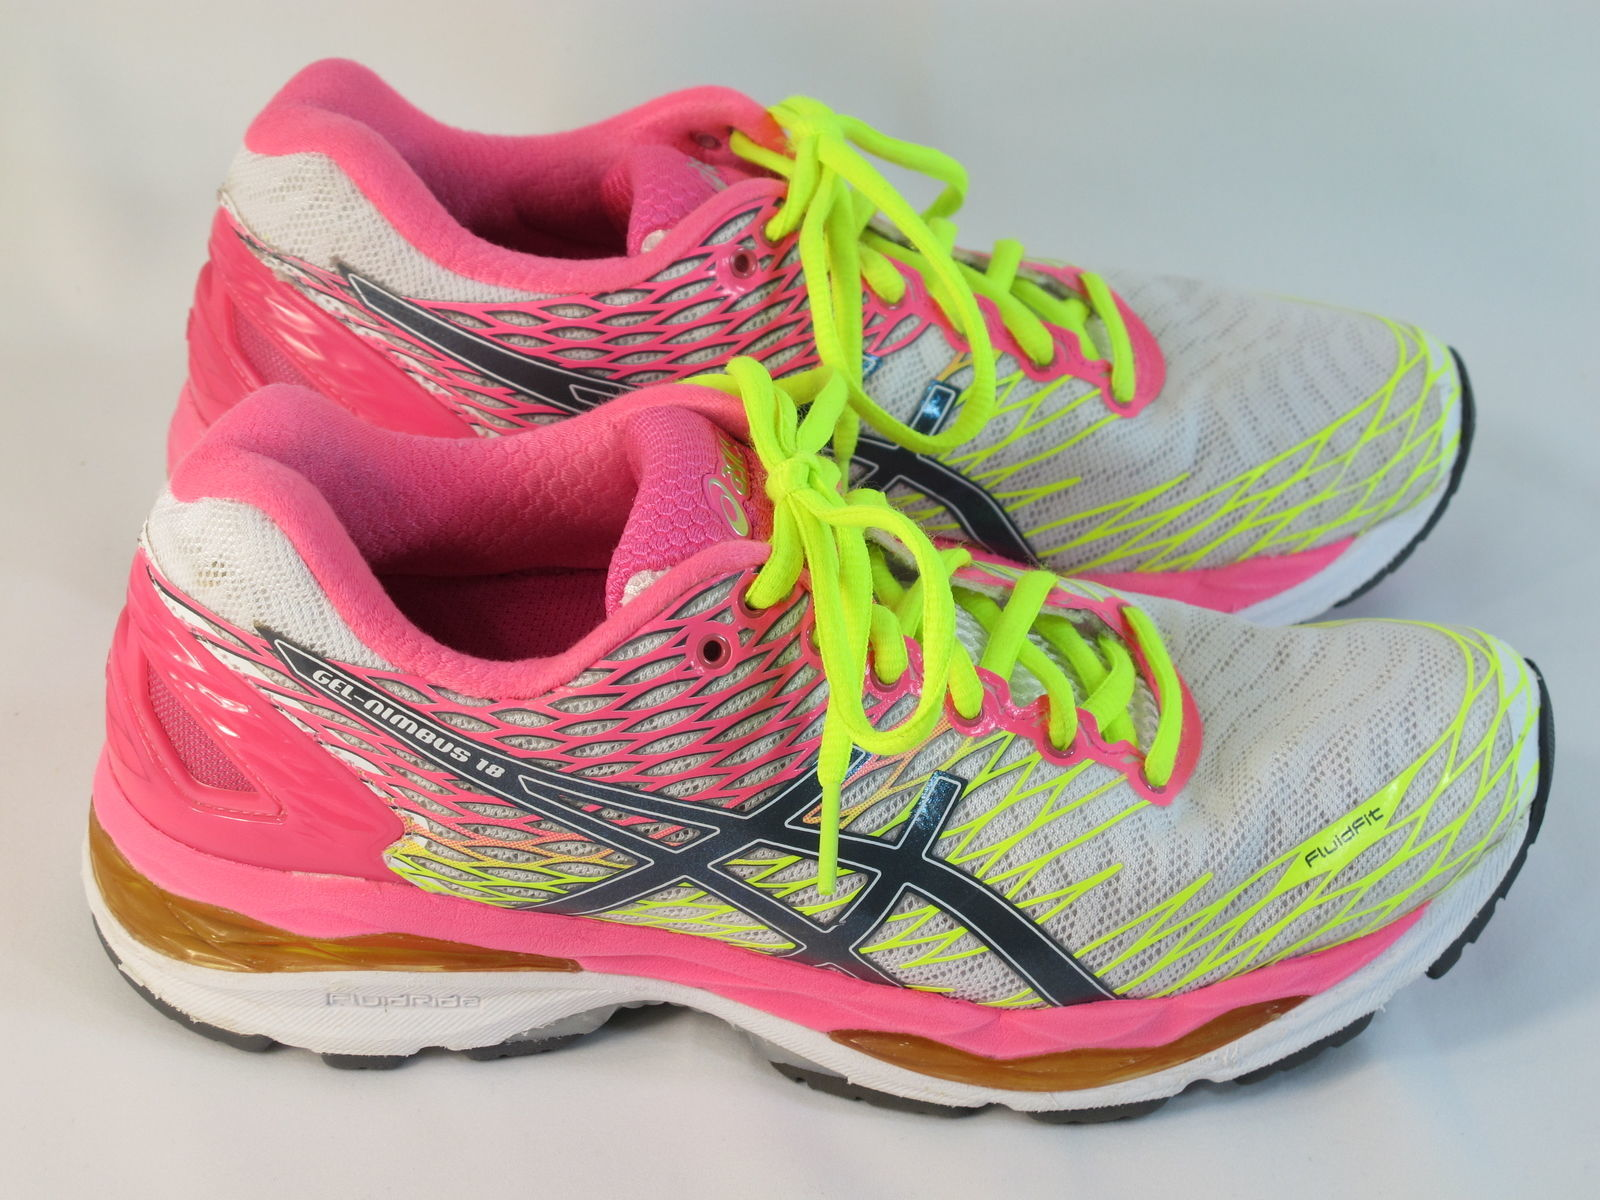 7b84b4dba ASICS Gel Nimbus 18 Running Shoes Women s and 50 similar items. S l1600